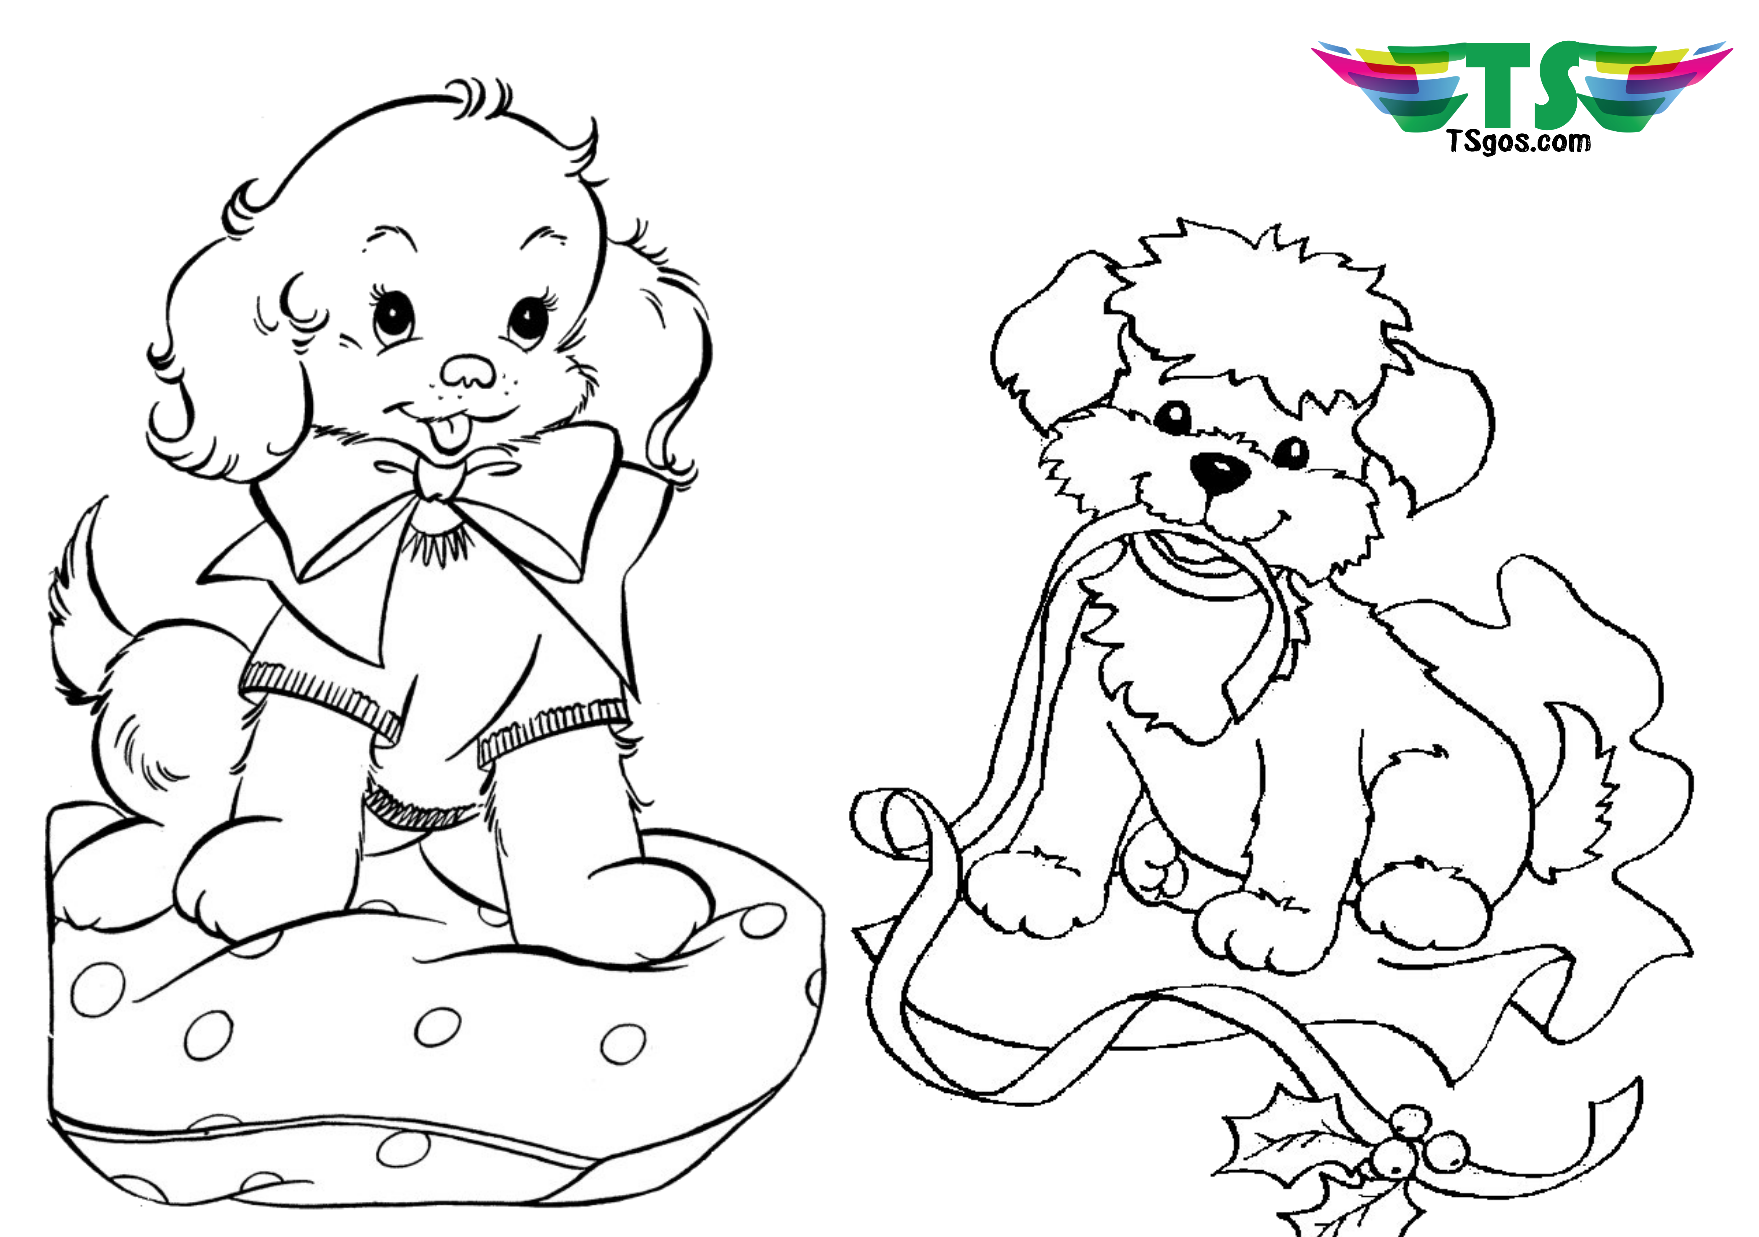 cute dogs coloring pages cute puppy small doggie coloring page for children cute pages dogs coloring